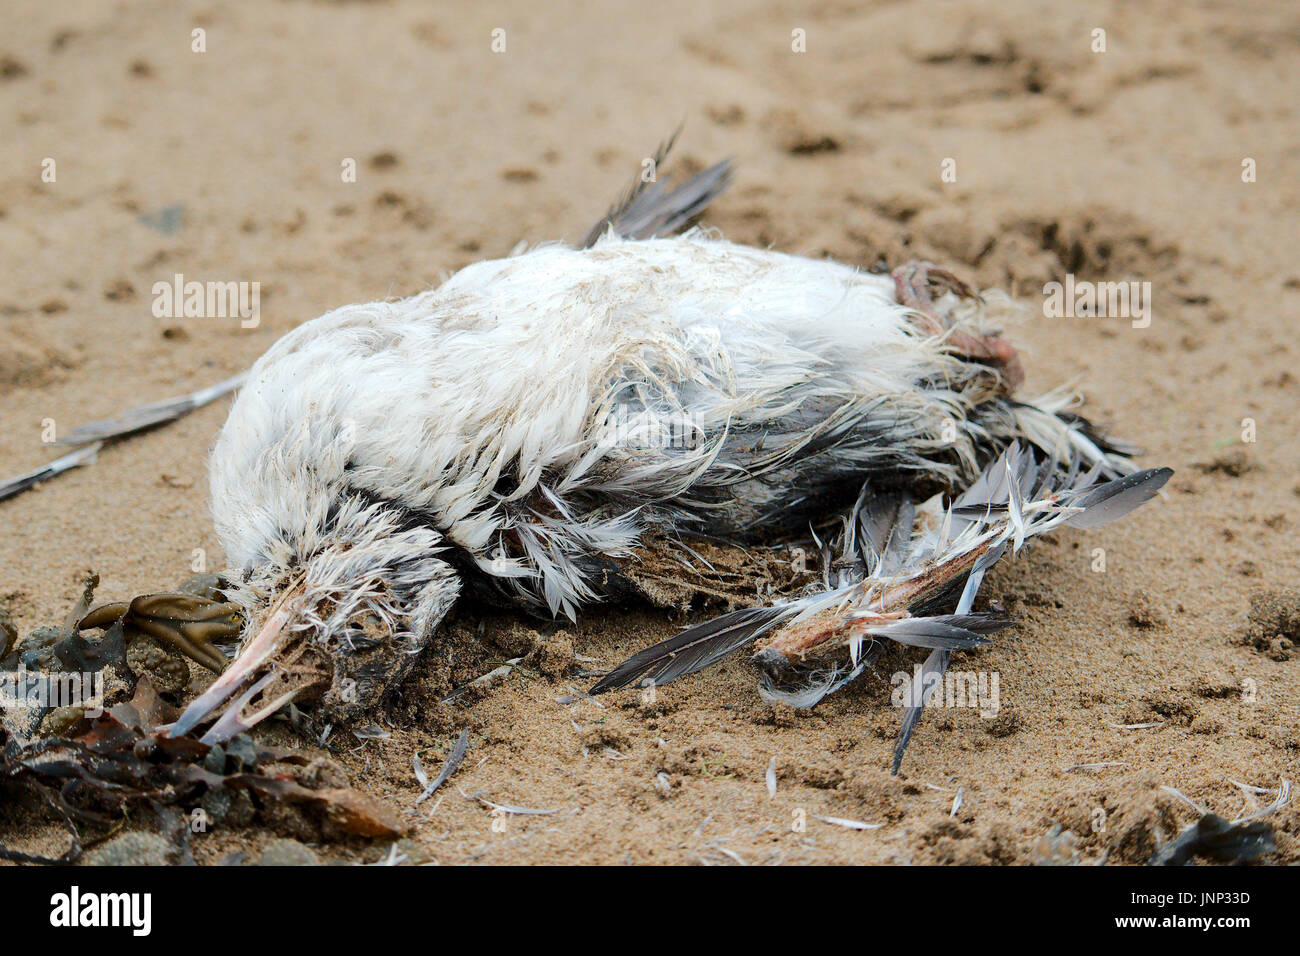 Dead seabird washed up on a beach. - Stock Image